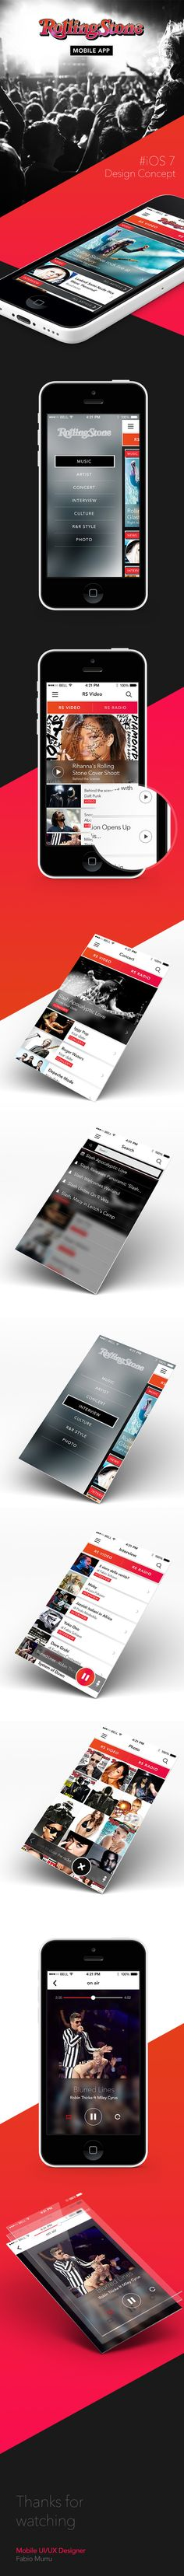 RollingStone mobile app, Design concept by Fabio Murru, via Behance